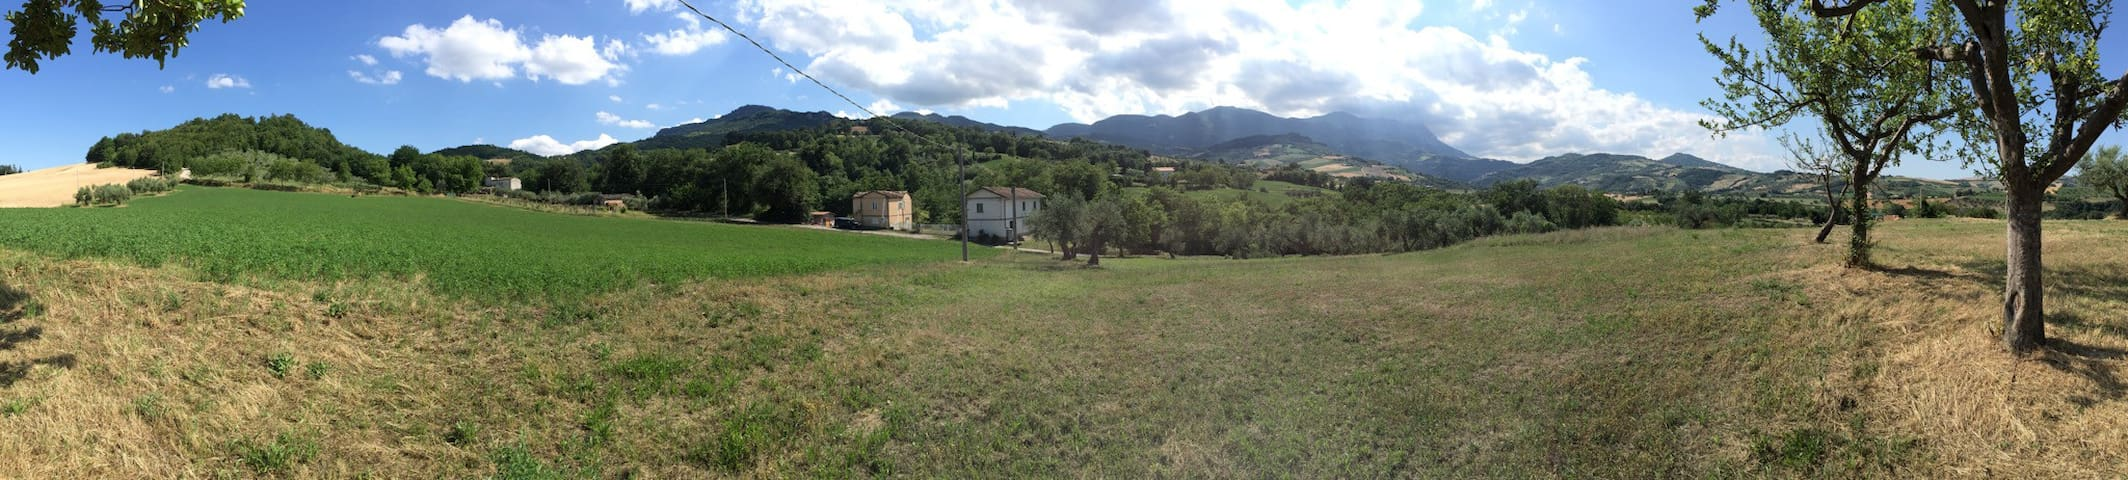 Family Home in Abruzzo Countryside - Montebello di Bertona - House